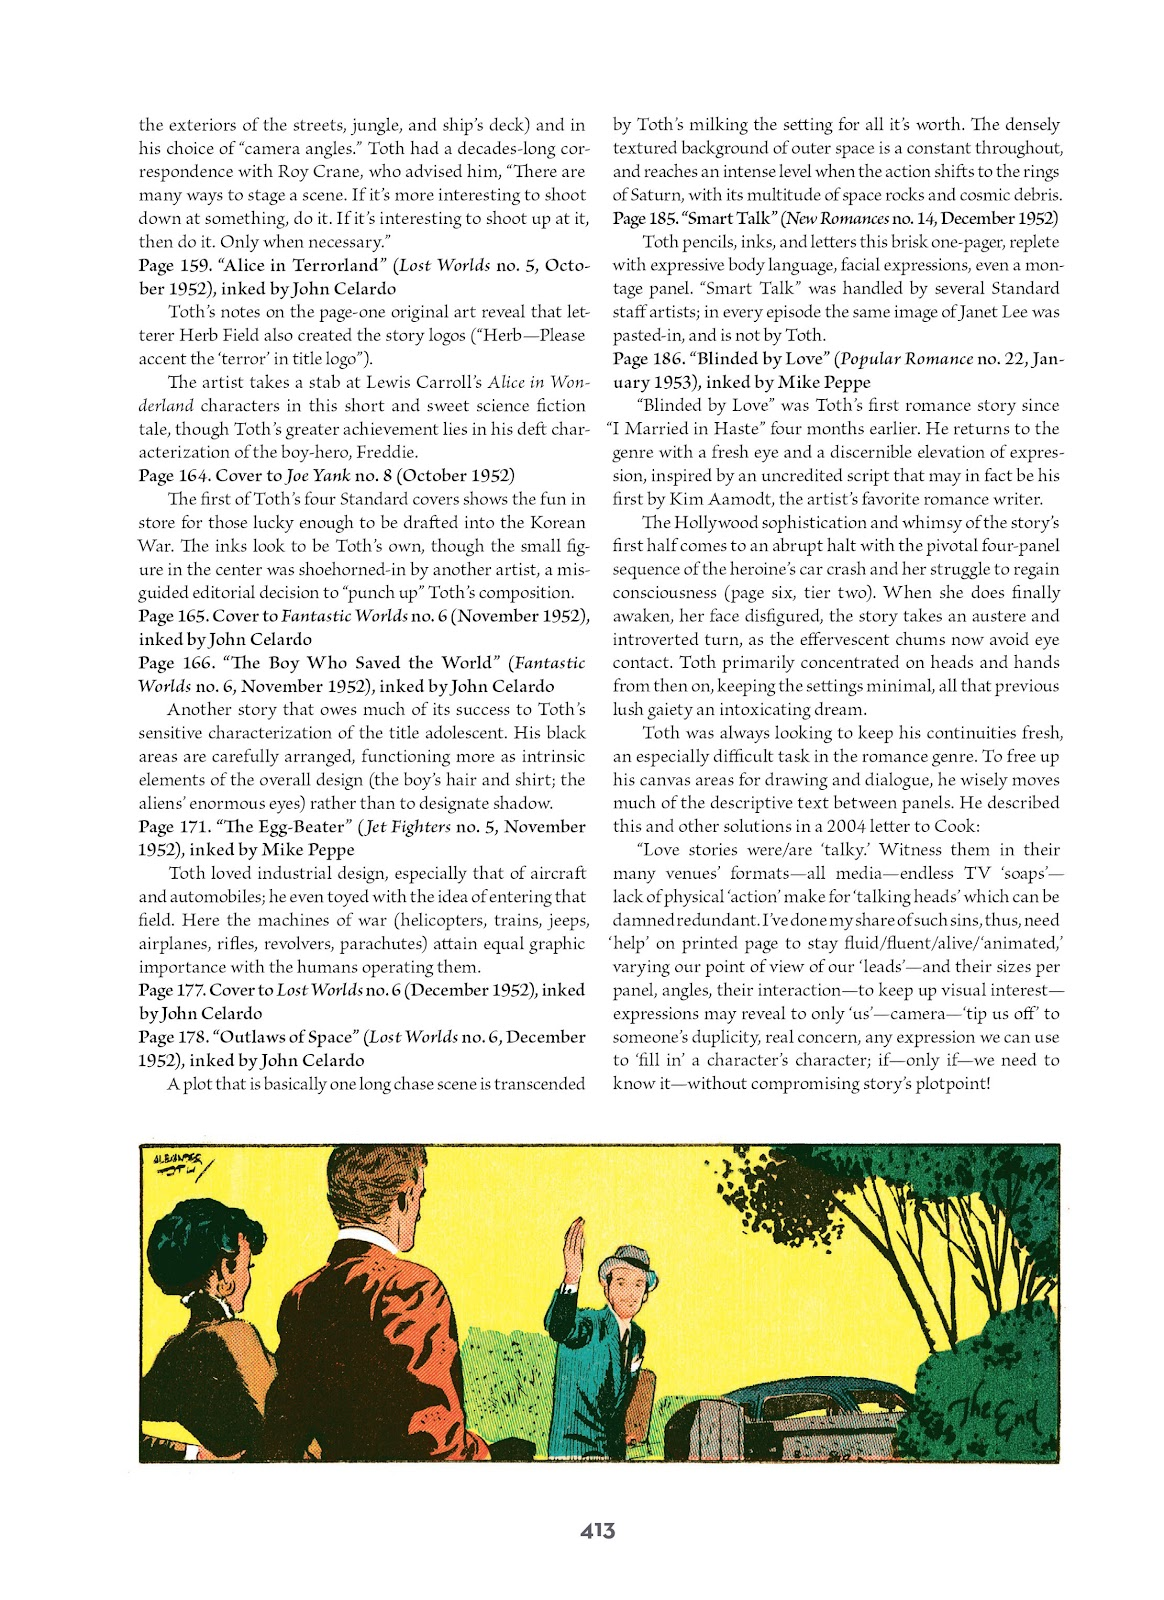 Read online Setting the Standard: Comics by Alex Toth 1952-1954 comic -  Issue # TPB (Part 4) - 114